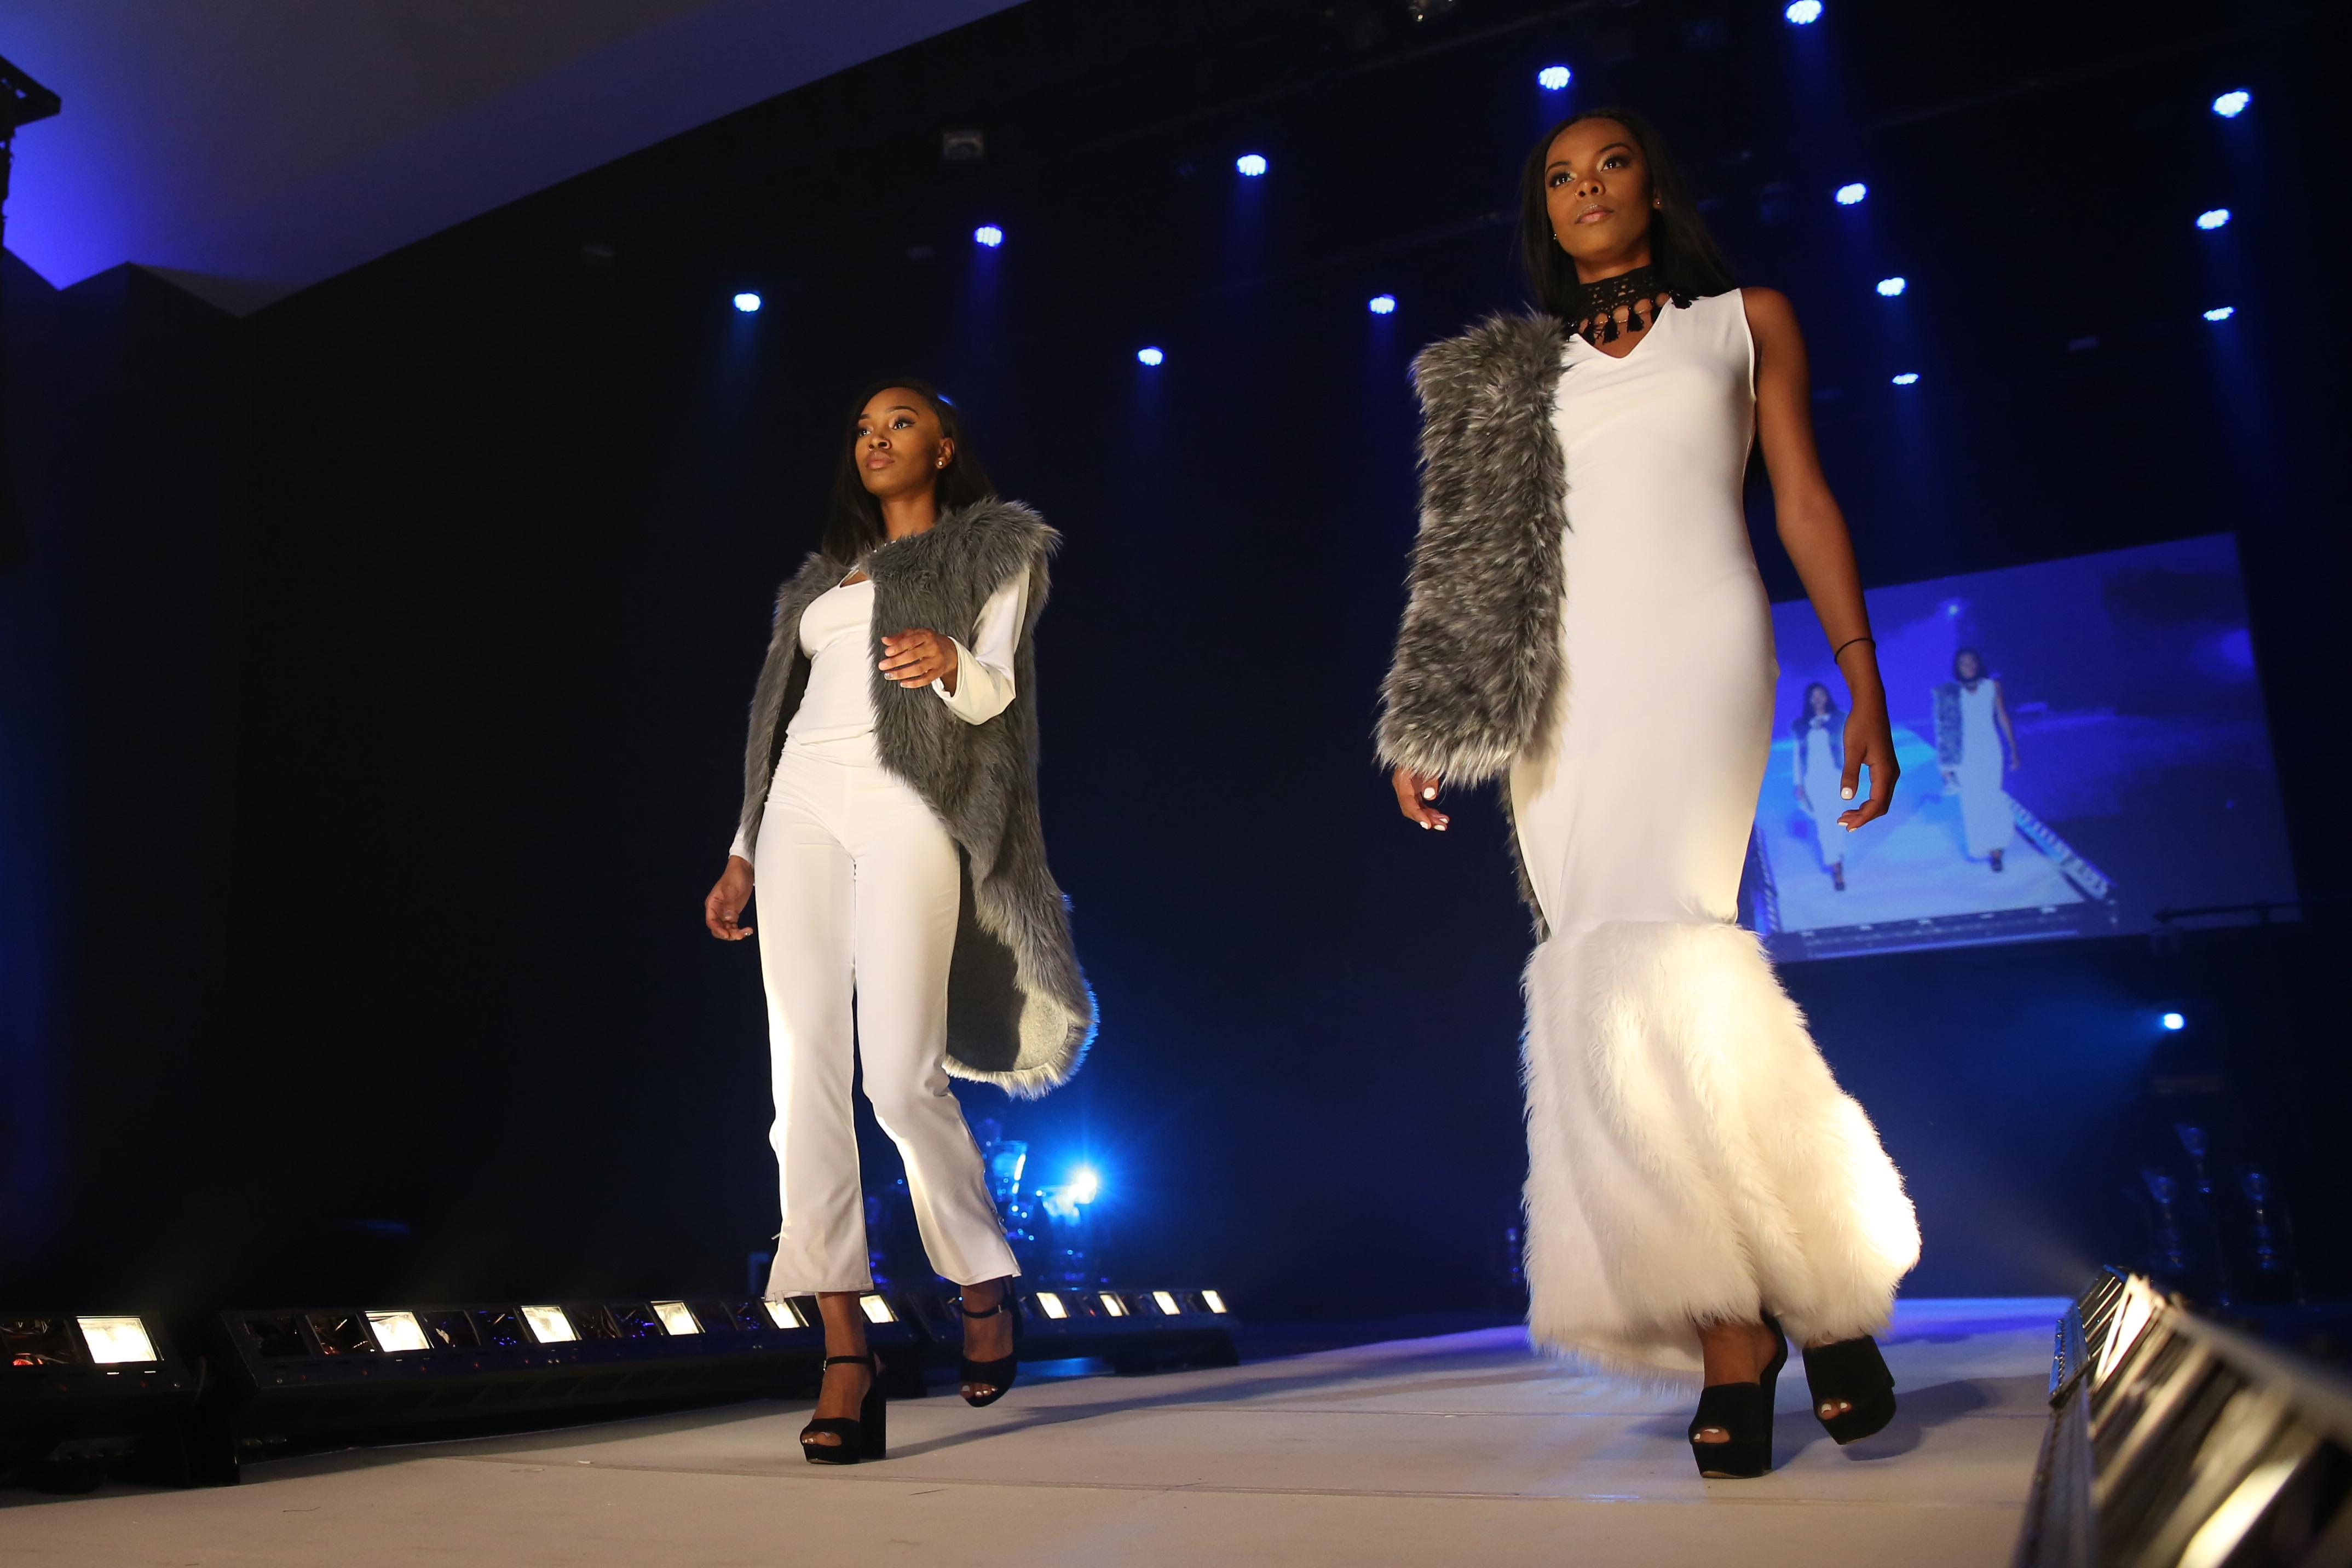 D.C. has a bad reputation for boring fashion, but the students of Howard University are fighting back. Their spring fashion show on March 30 brought together student designers and models to present looks ranging from the street-ready to the ornate - without a dull outfit in sight. (Amanda Andrade-Rhoades/DC Refined)